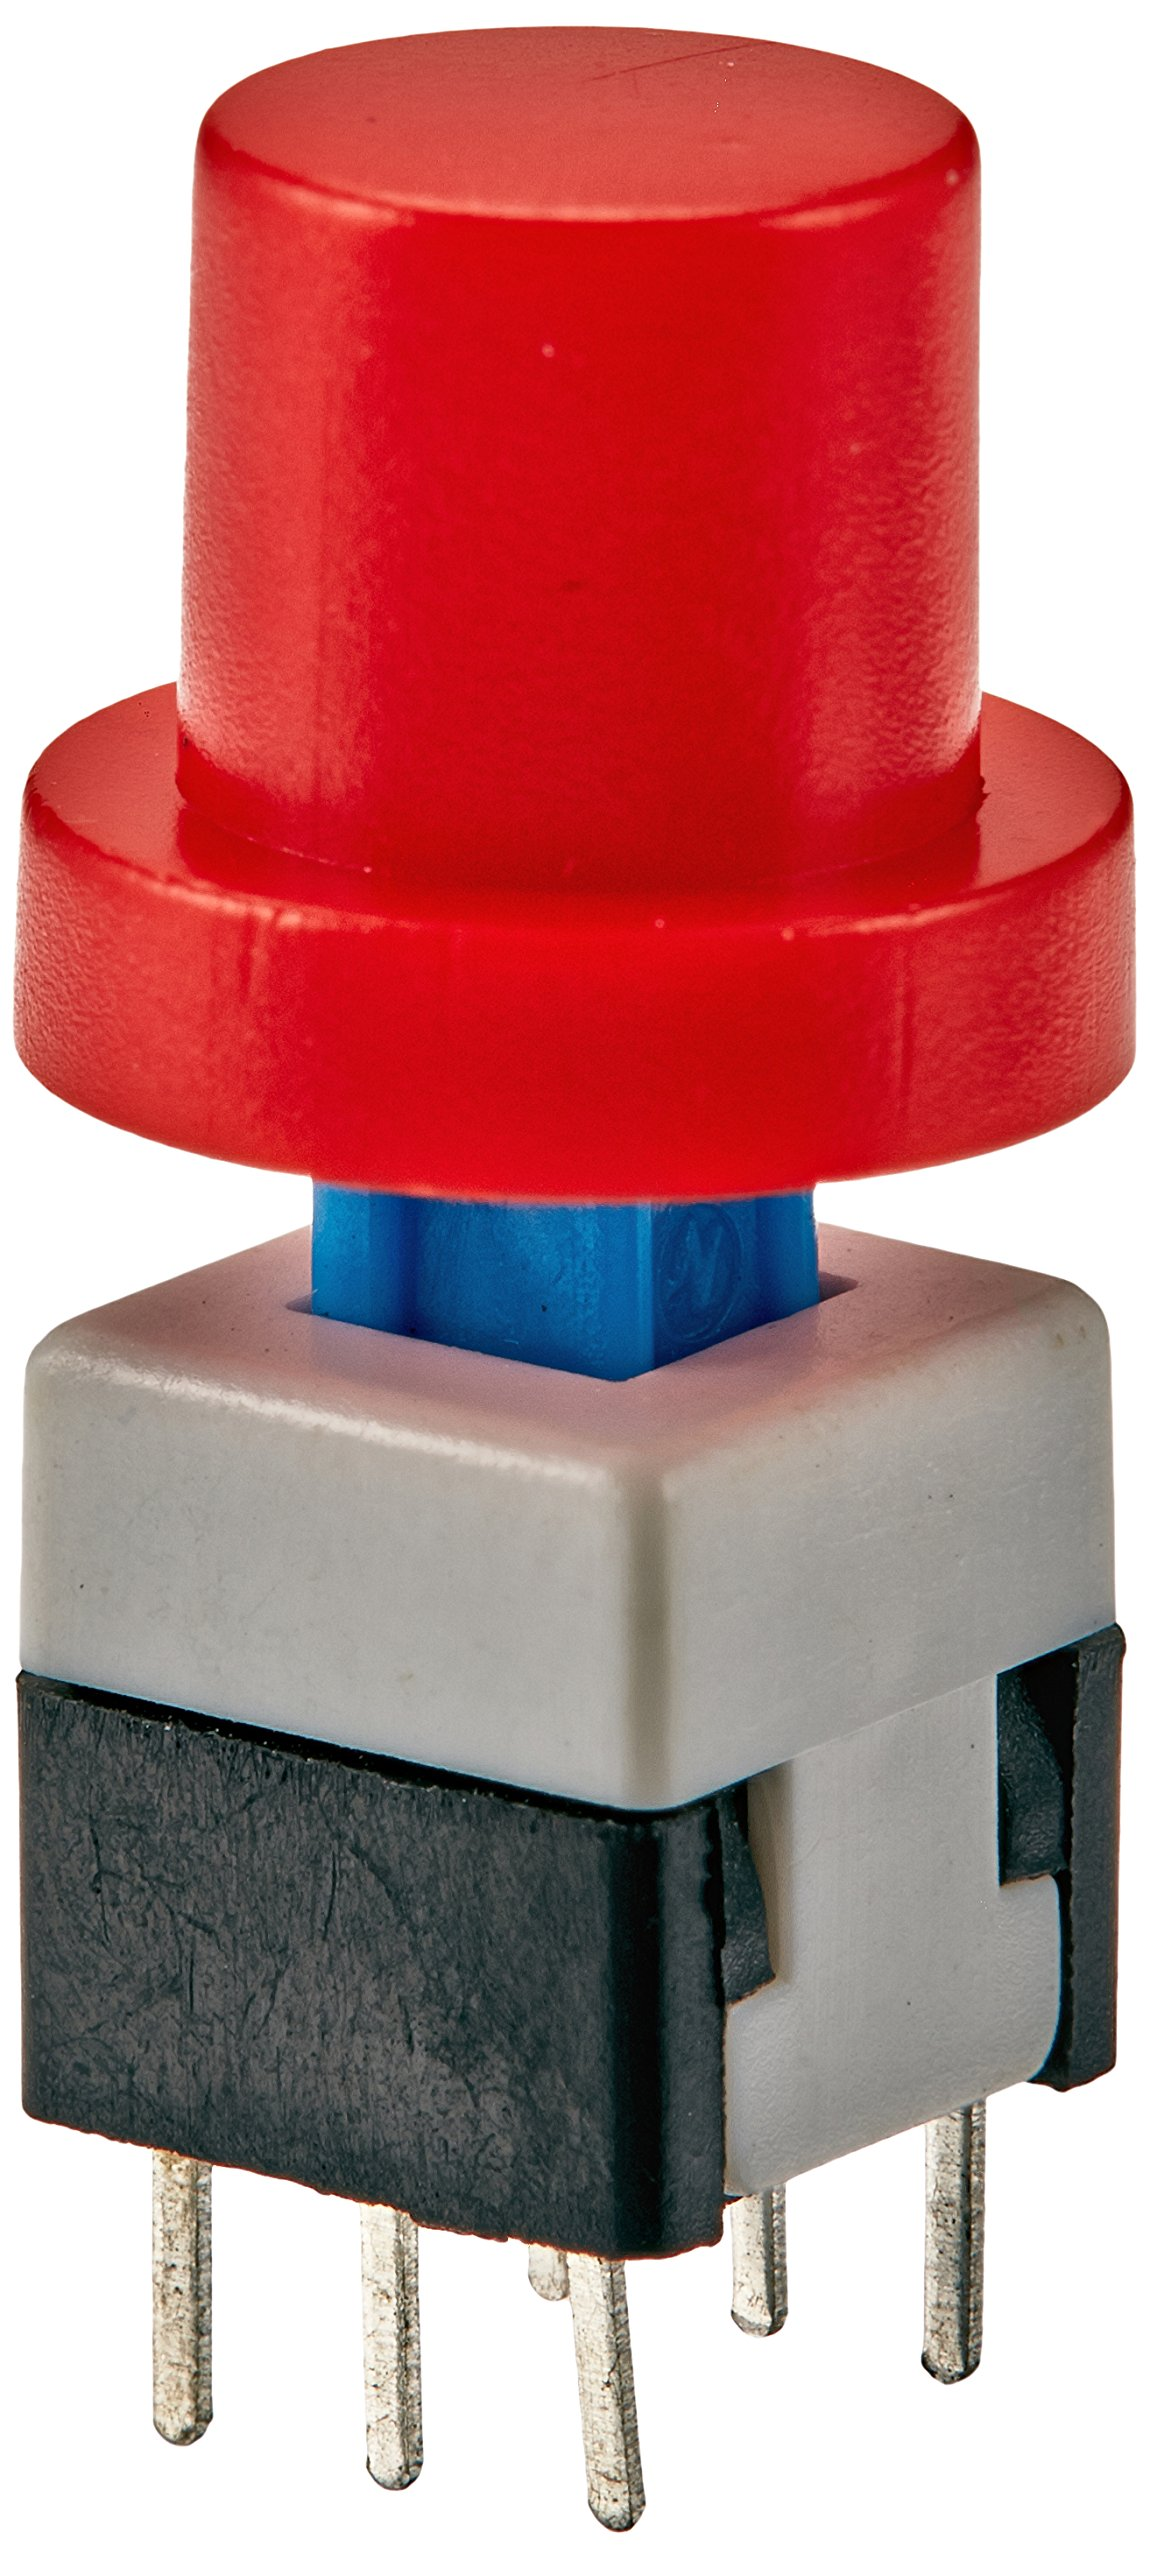 Uxcell Self Lock Tact/Tactile/Push Button Switch, 8 x 8 x 17mm